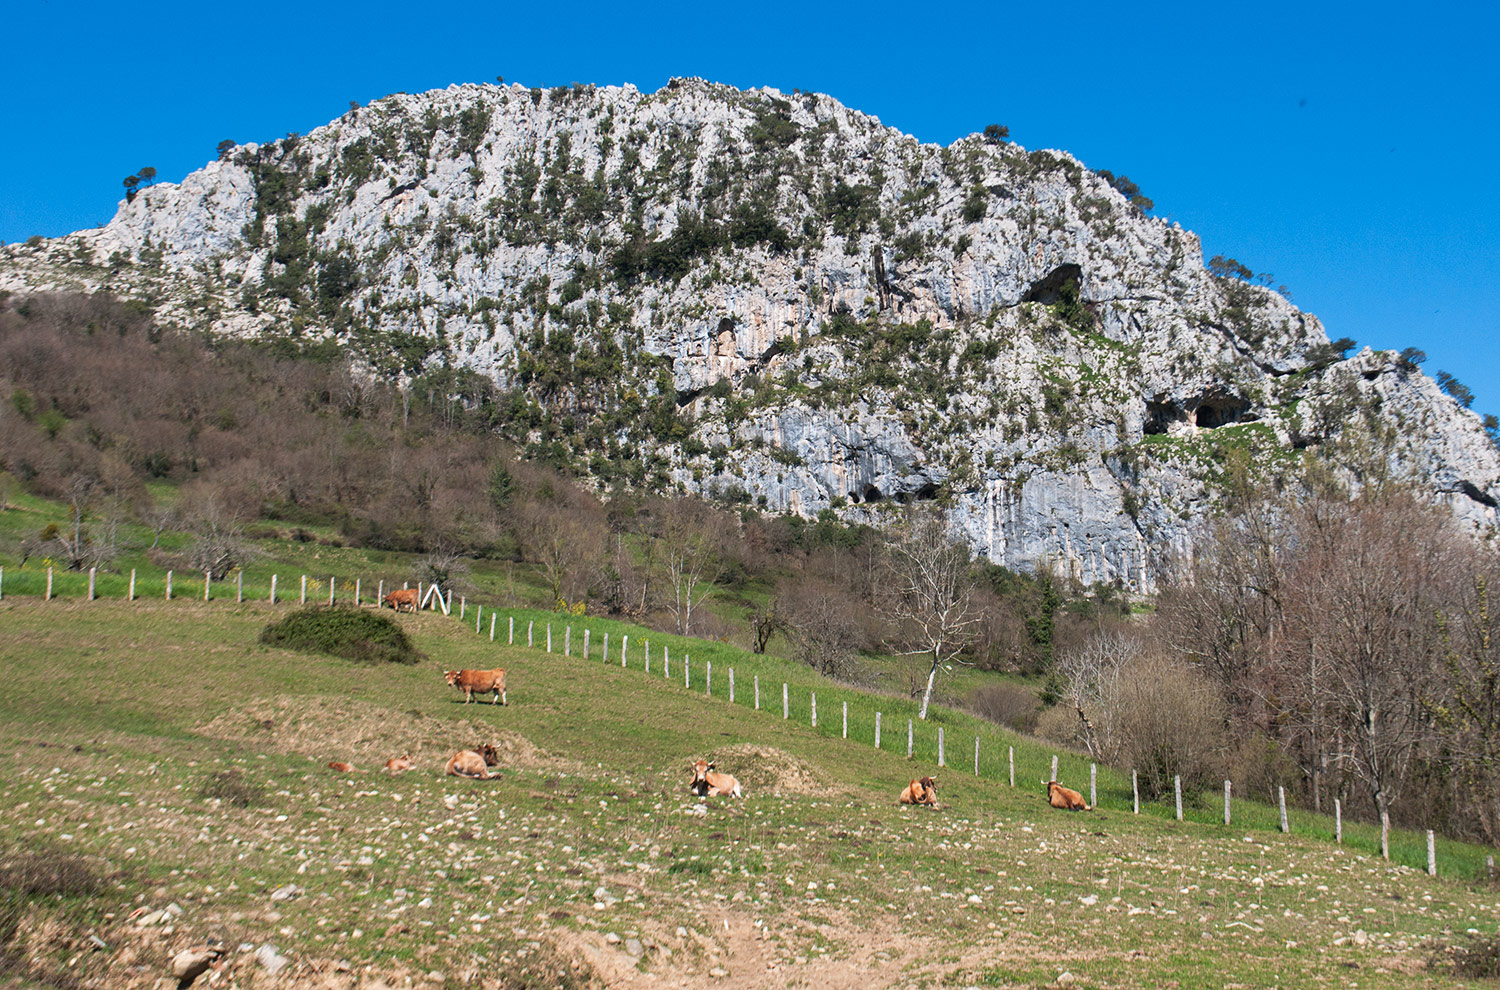 The best blue cheese in the world, Cabrales Cueva del Molín, is made in Asturias